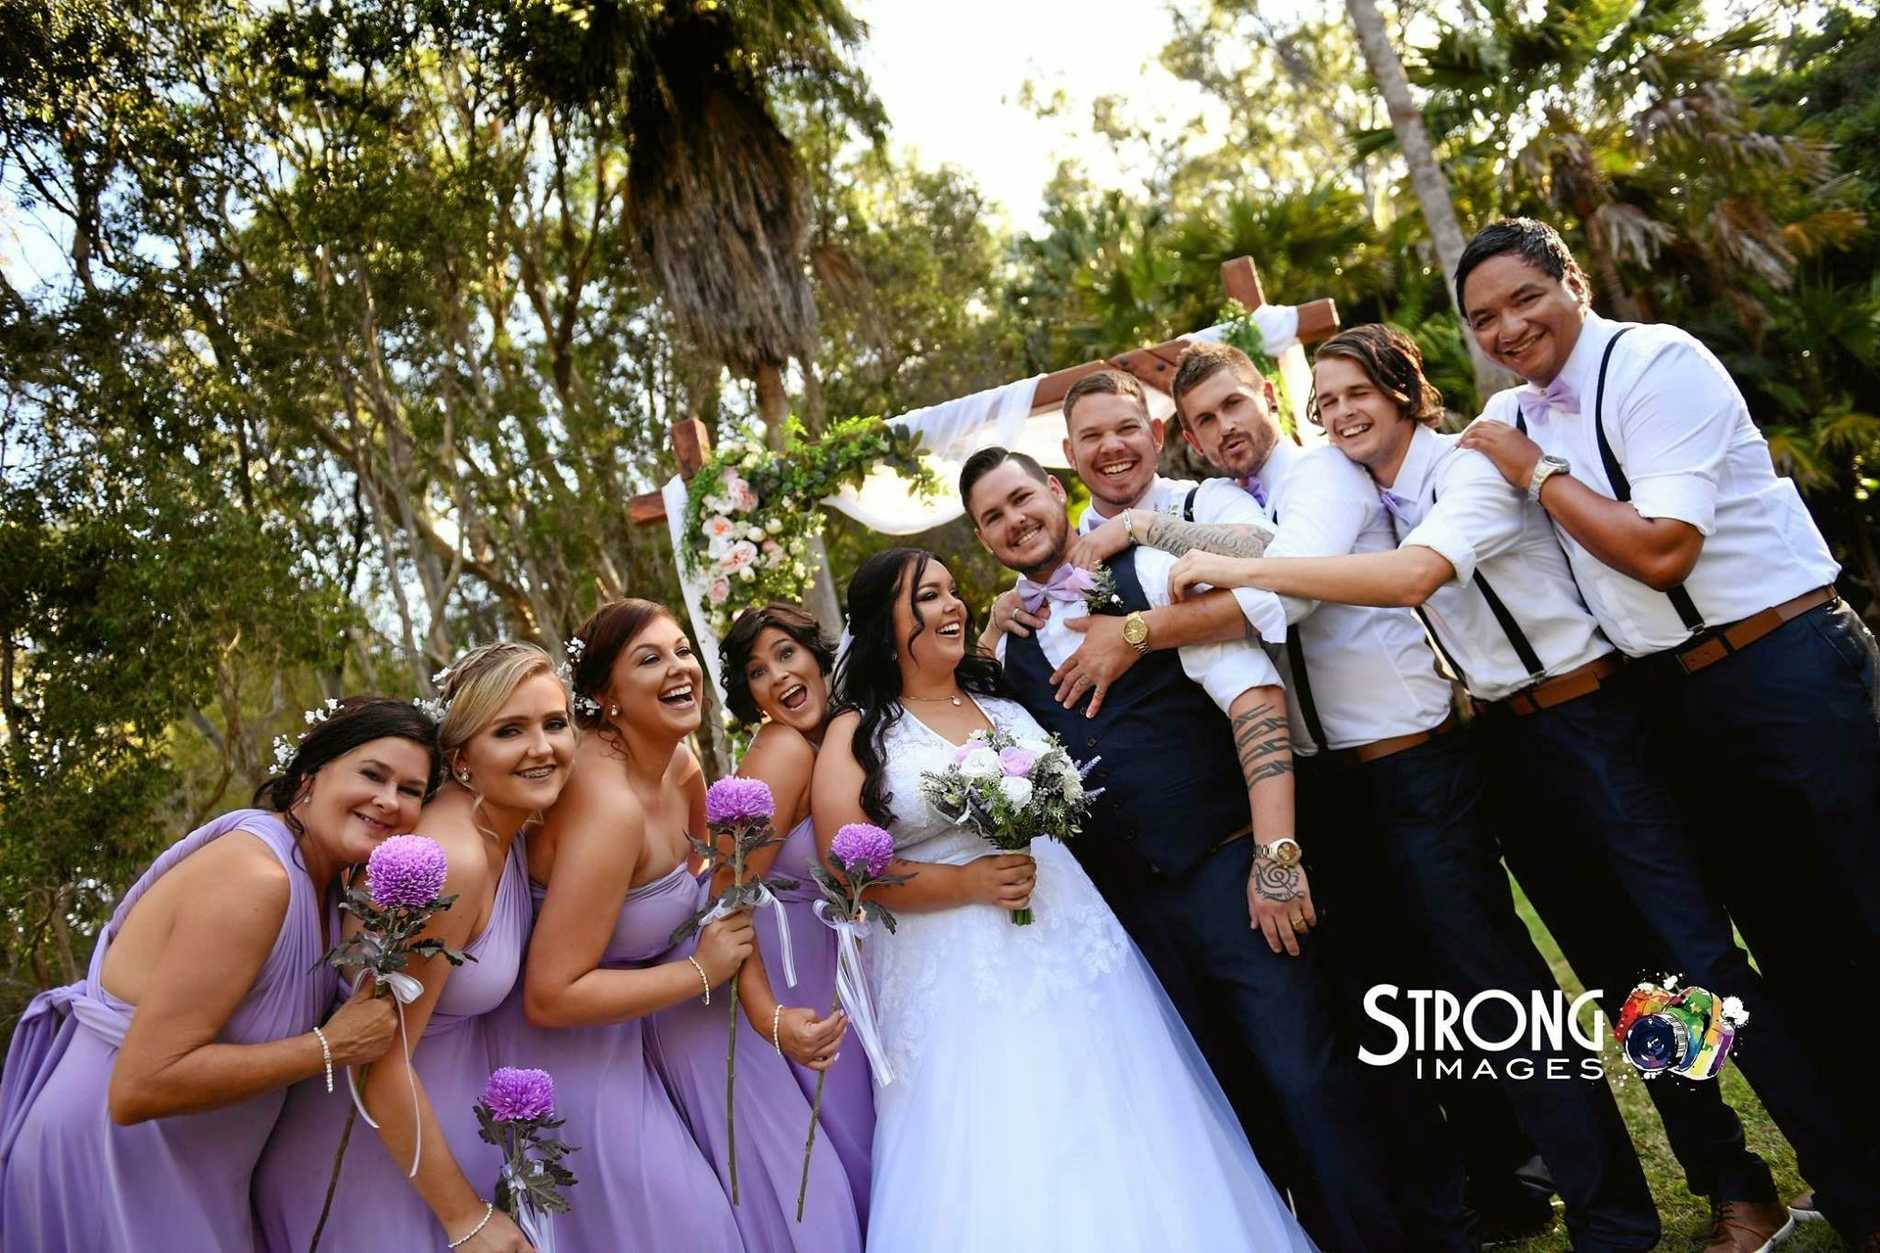 SAD TURNED HAPPY: Alyssa-Jane Gale, 21, and Parkah Gale, 25, got married at Gladstone's Tondoon Botanic Gardens on October 7.